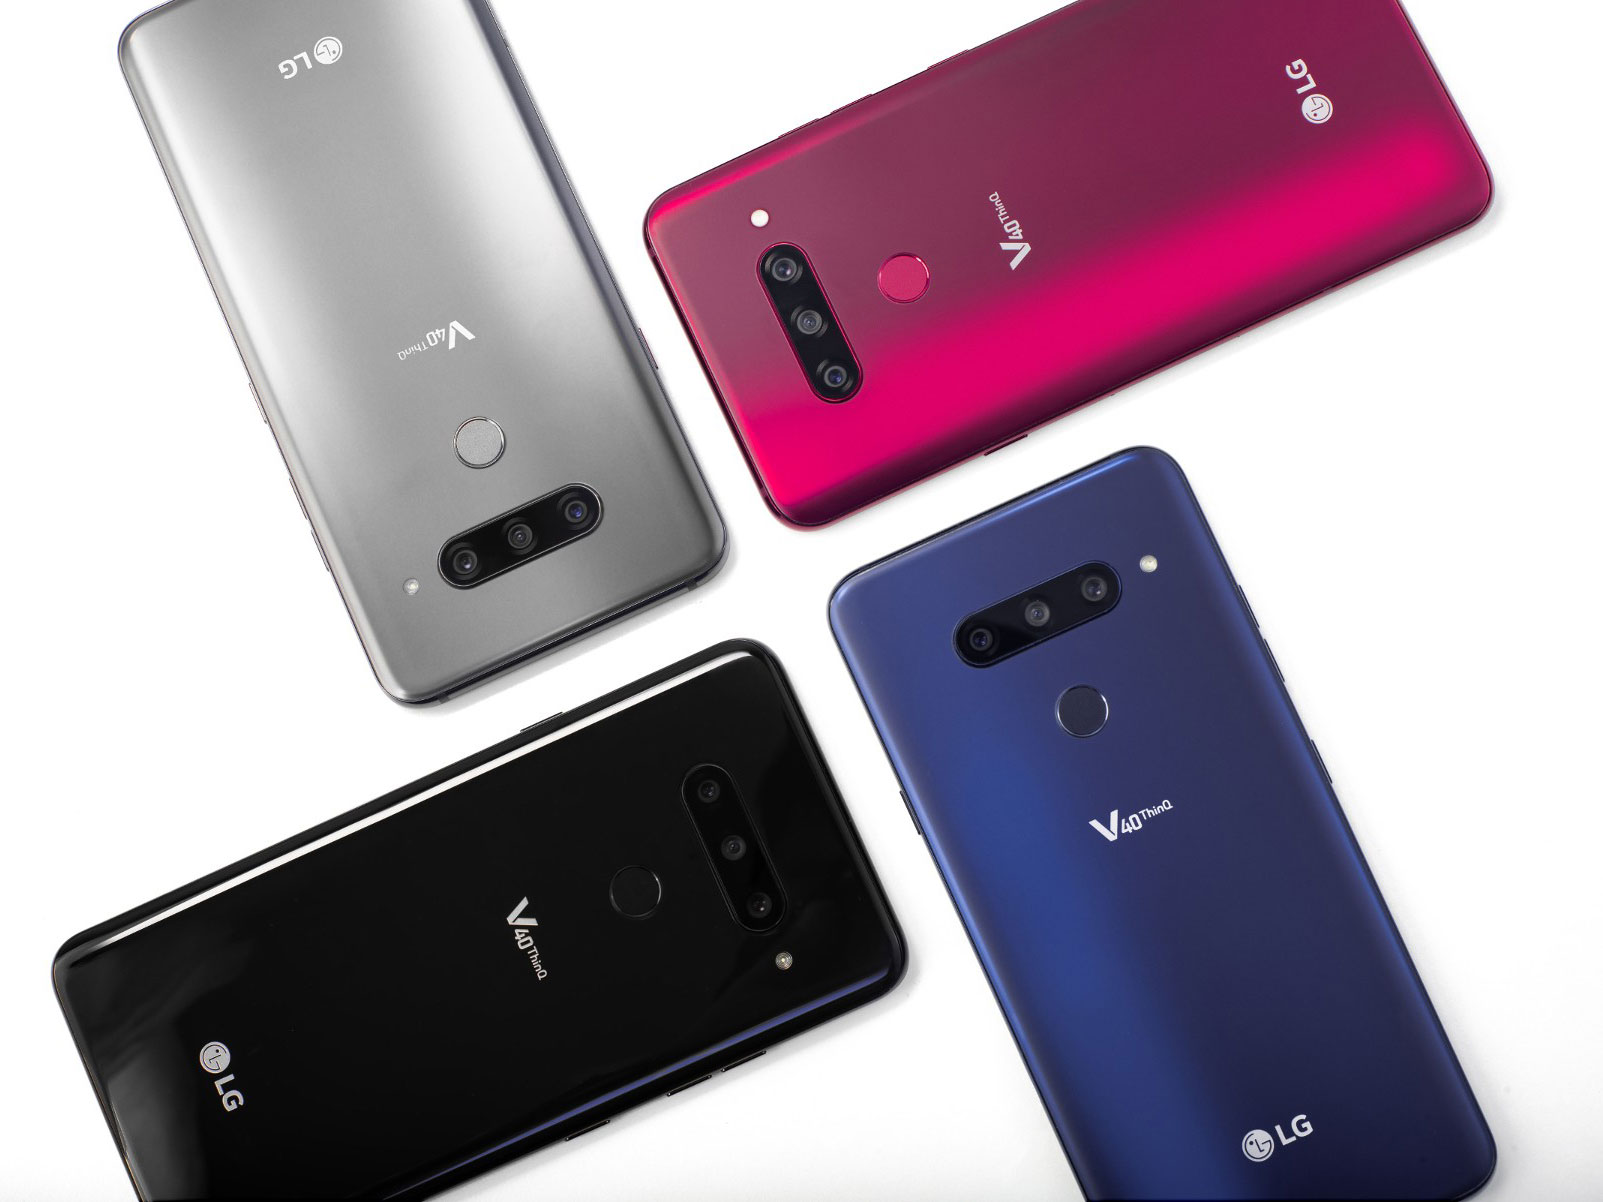 The LG V40 ThinQ is the first smartphone with wide, standard